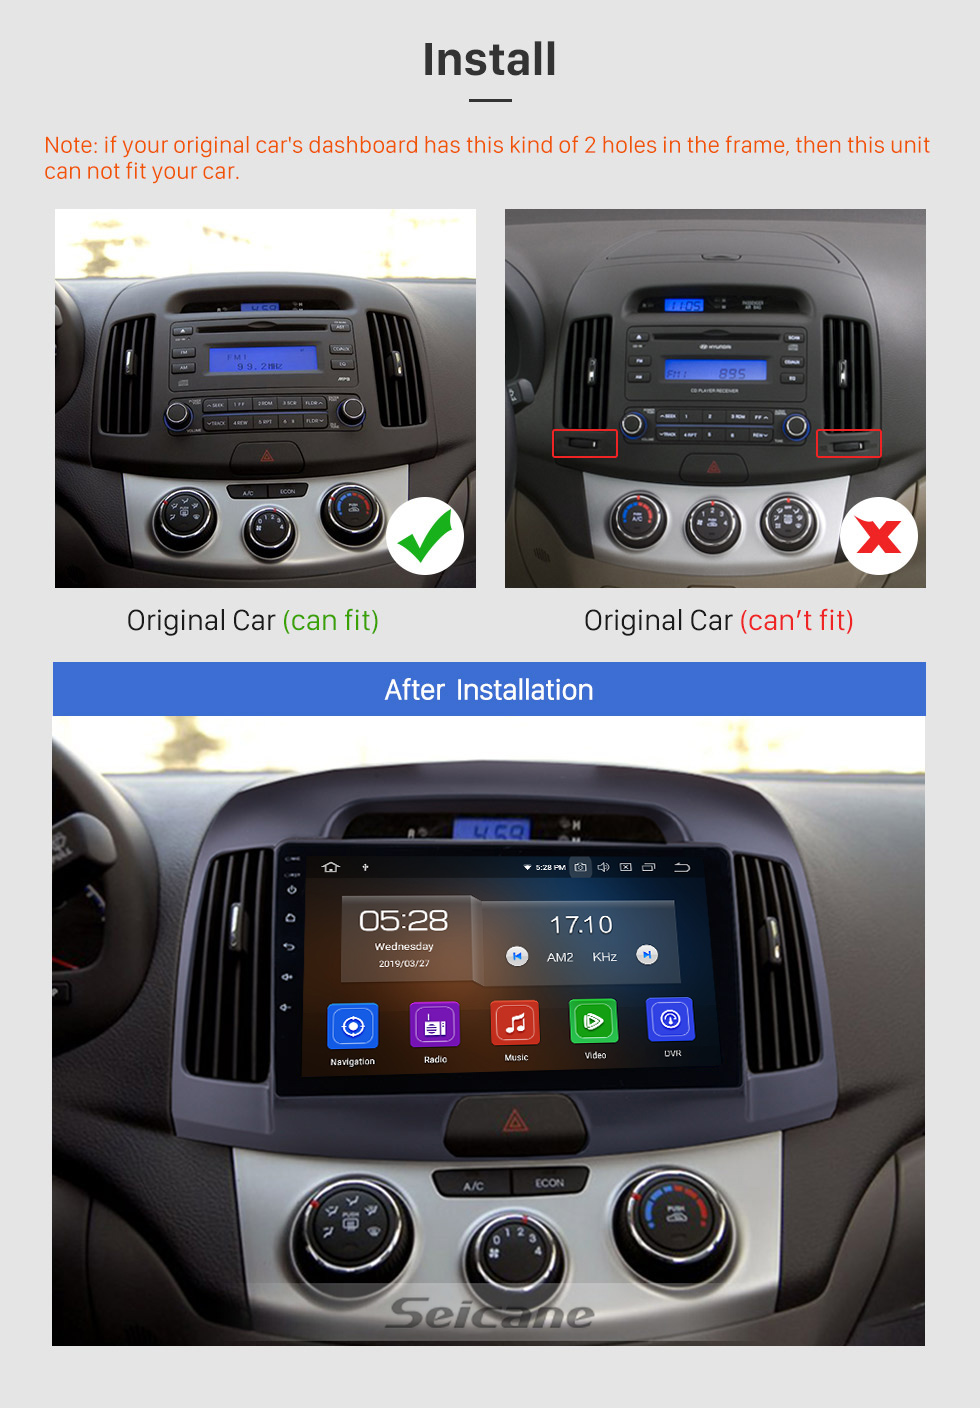 Seicane Soem-Upgrade 9 Zoll Android GPS-Navigationsradio für 2008 2009 Hyundai Elantra HD-Touchscreen WIFI Bluetooth Digital TV SWC FM Carplay USB